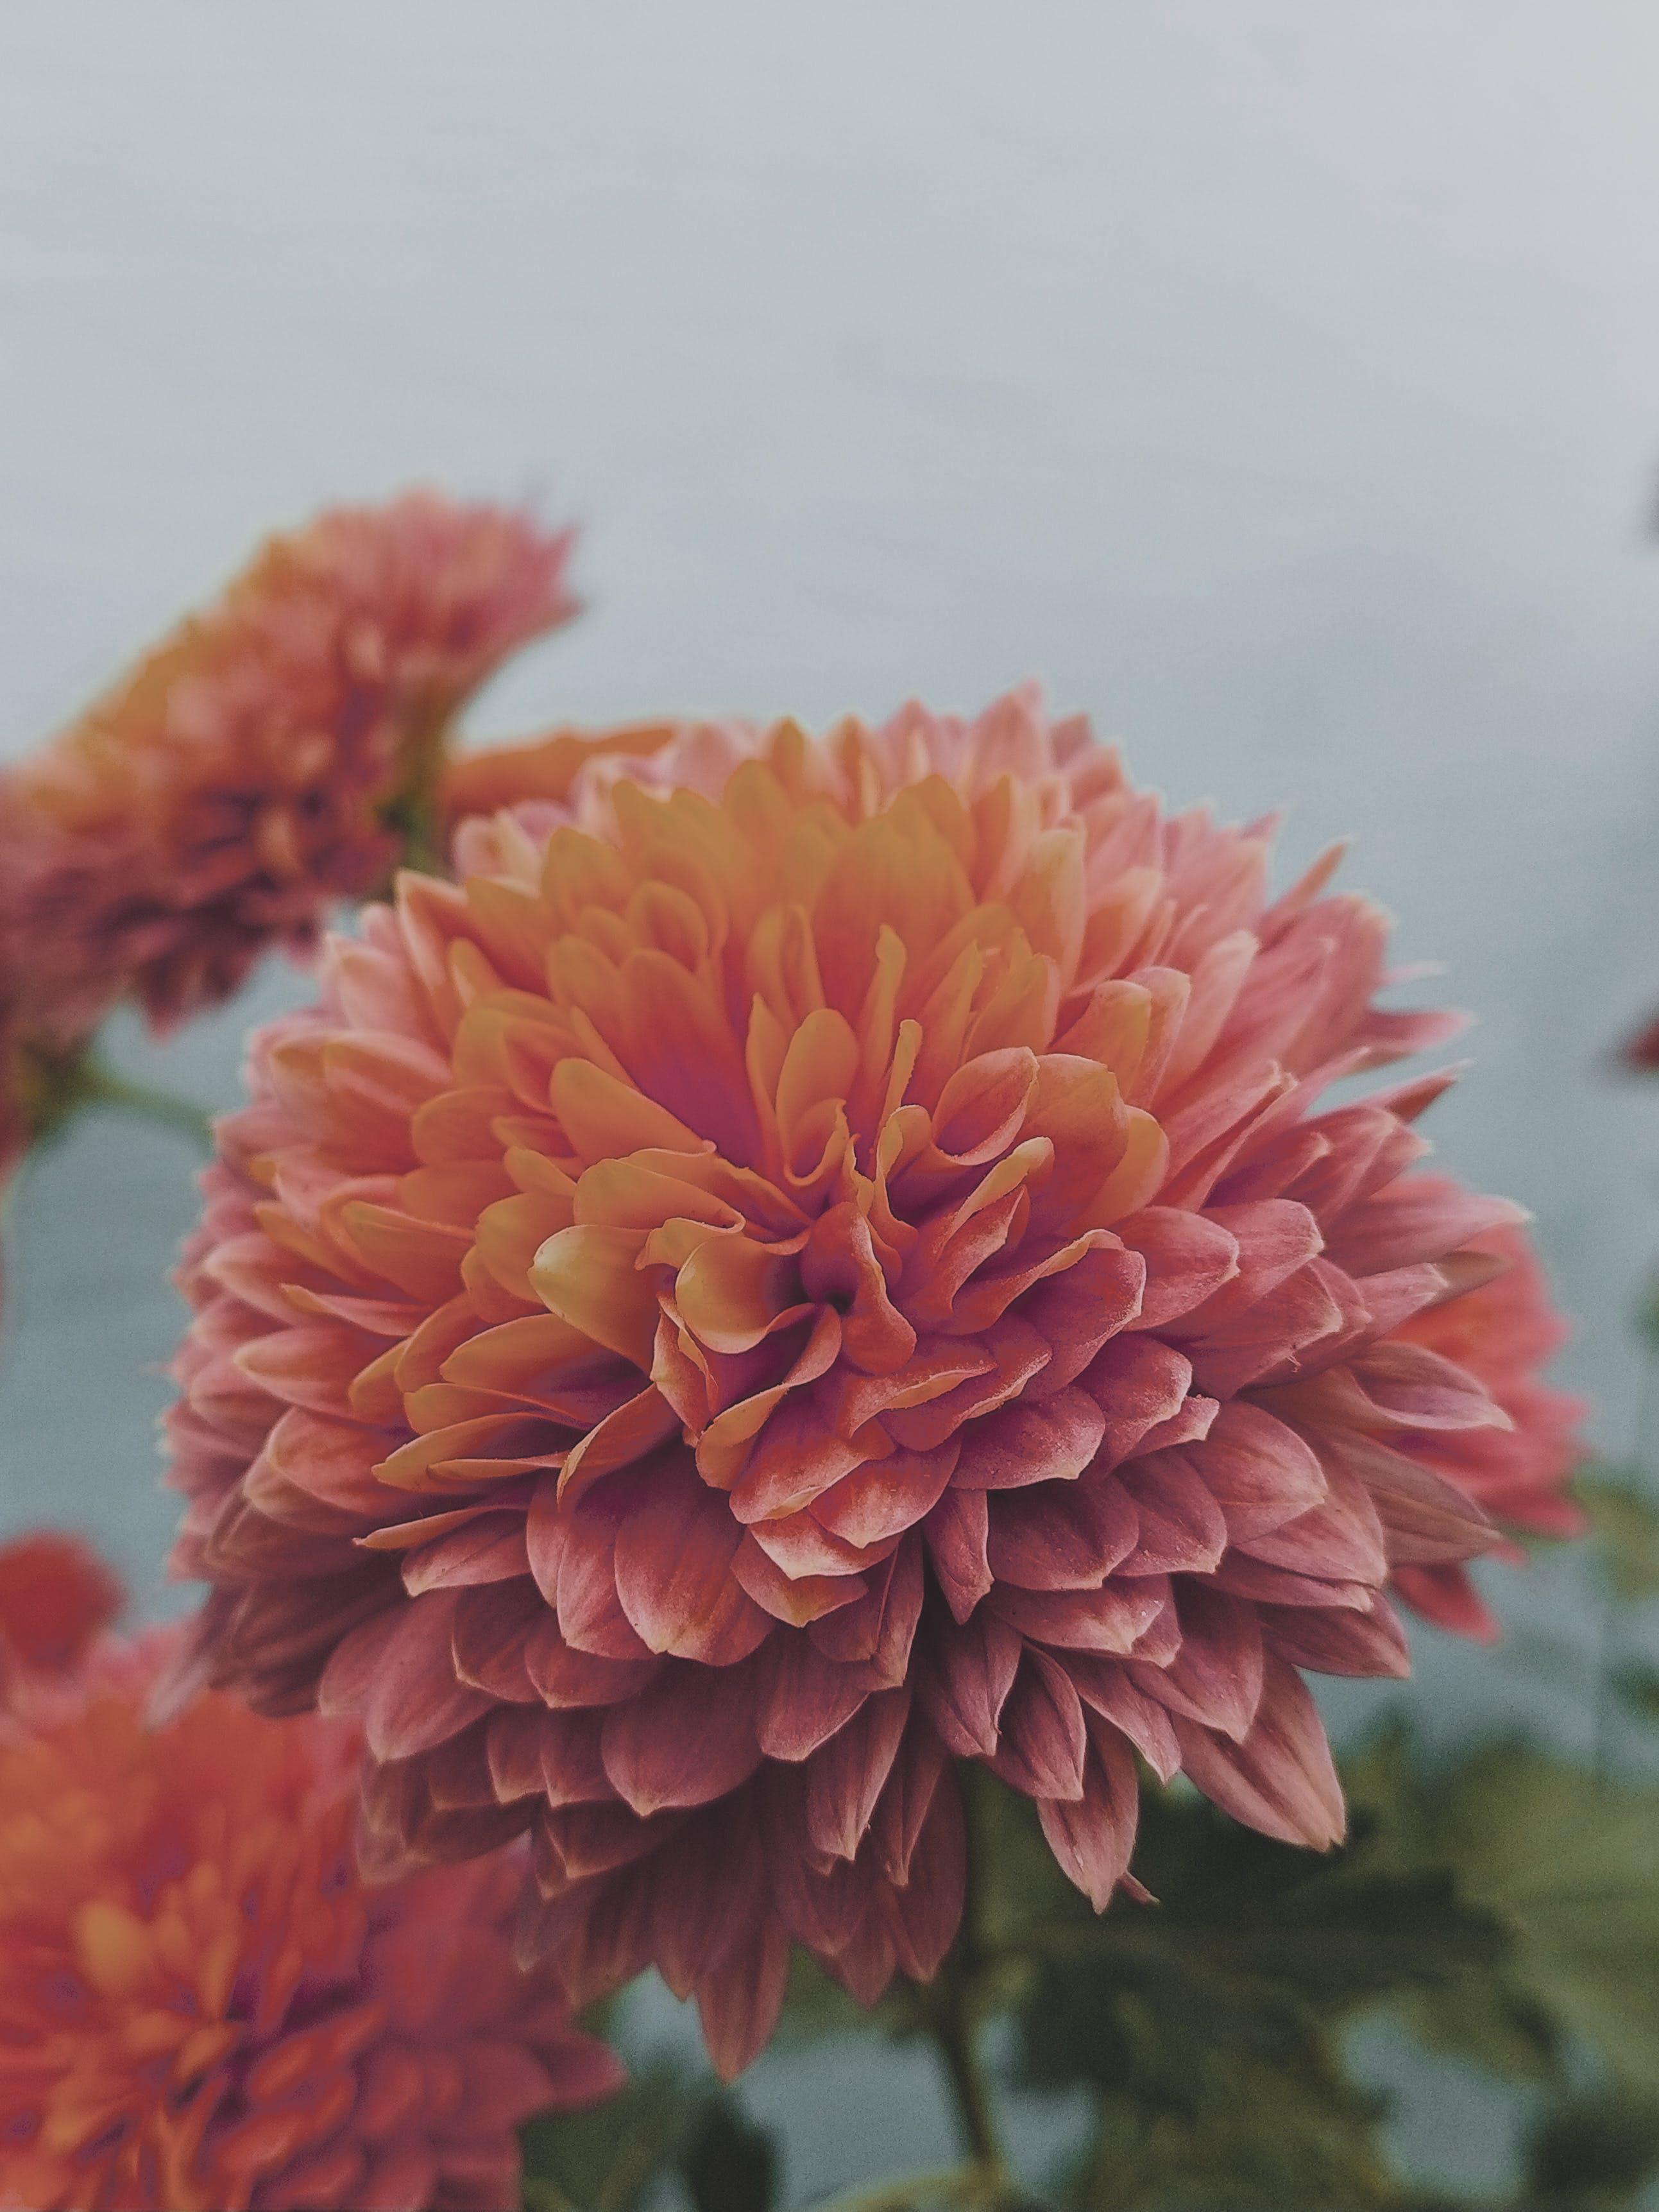 Free stock photo of beautiful flowers, blooming, blossom, blurred background